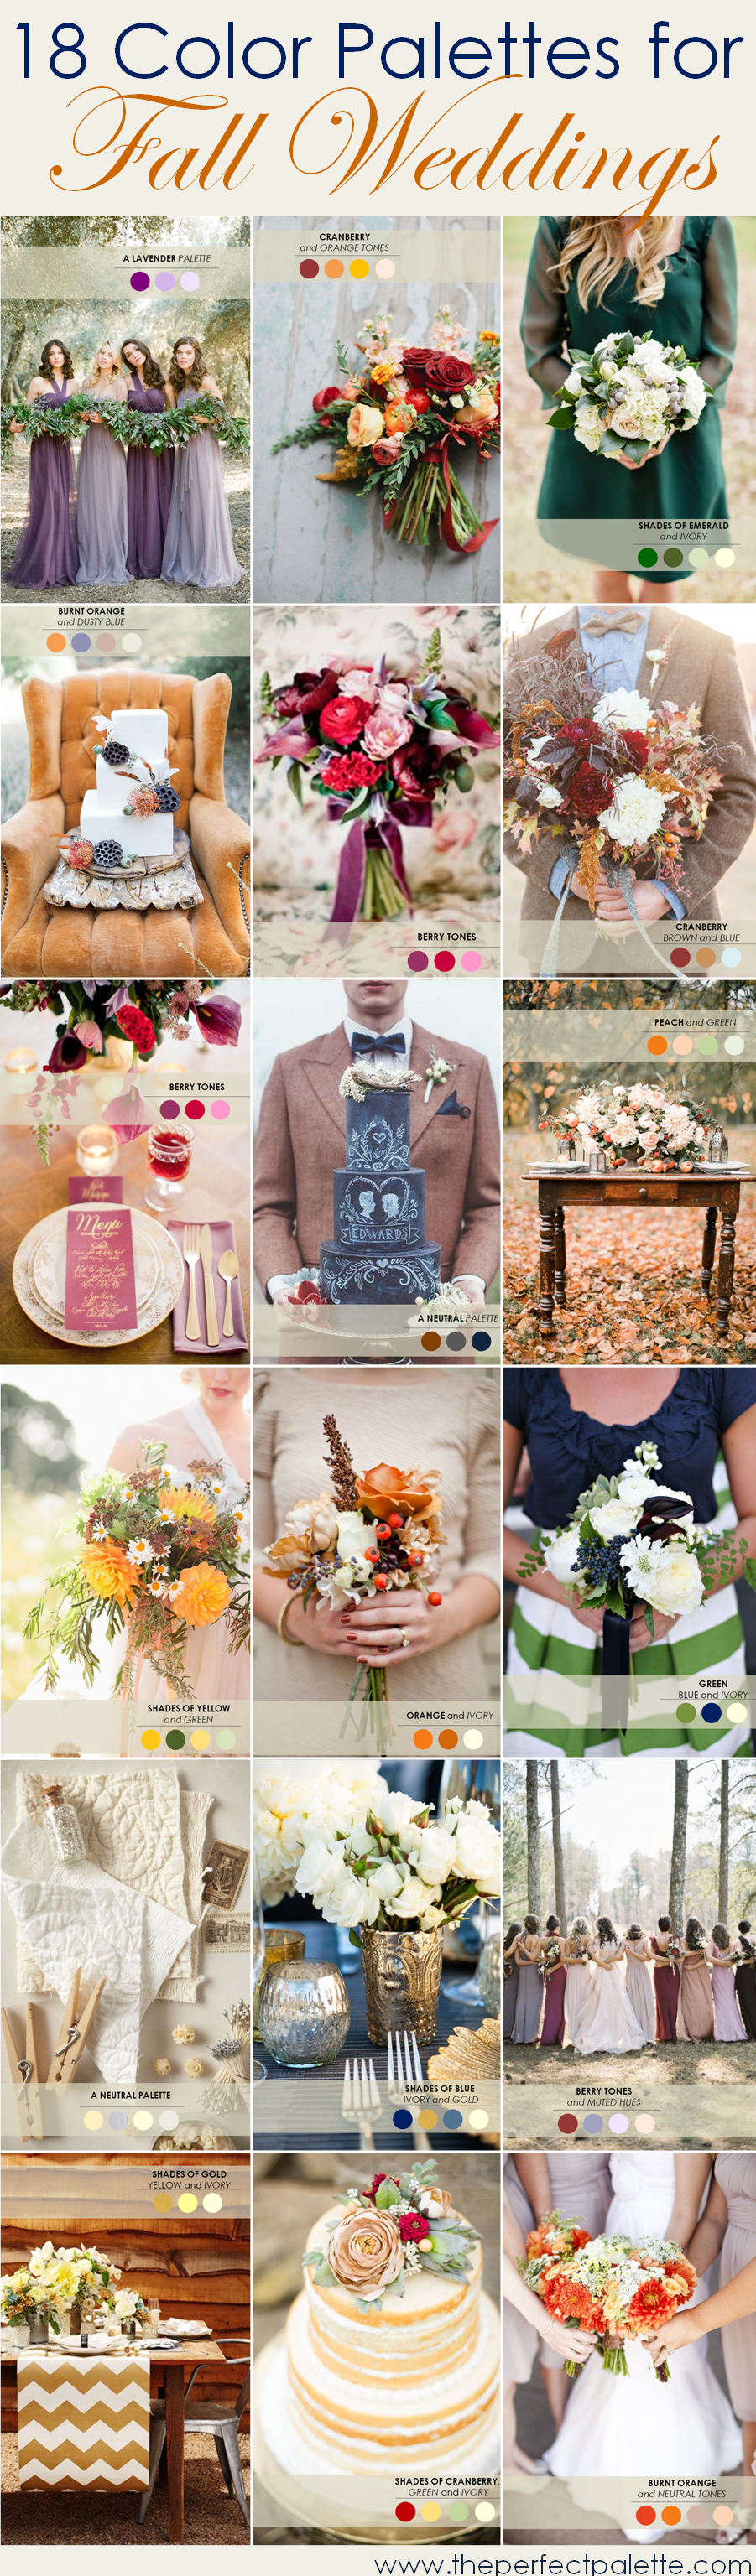 Emerald wedding decor ideas   Fall Wedding Color Palettes  The Ultimate Guide  Weddings